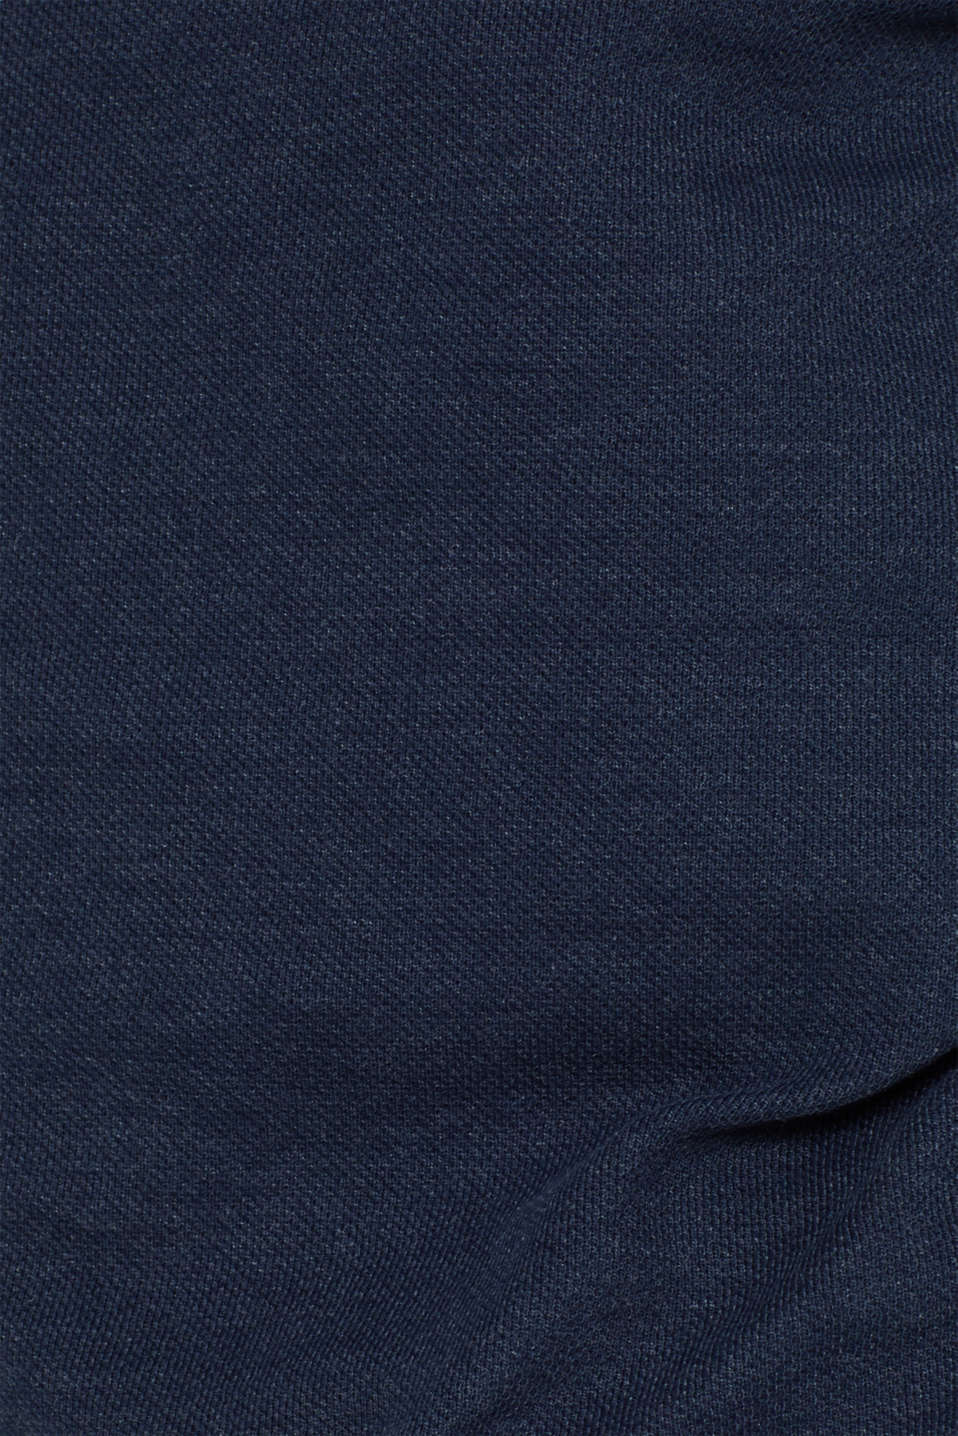 Piqué long sleeve top with a drawstring collar, NAVY, detail image number 4